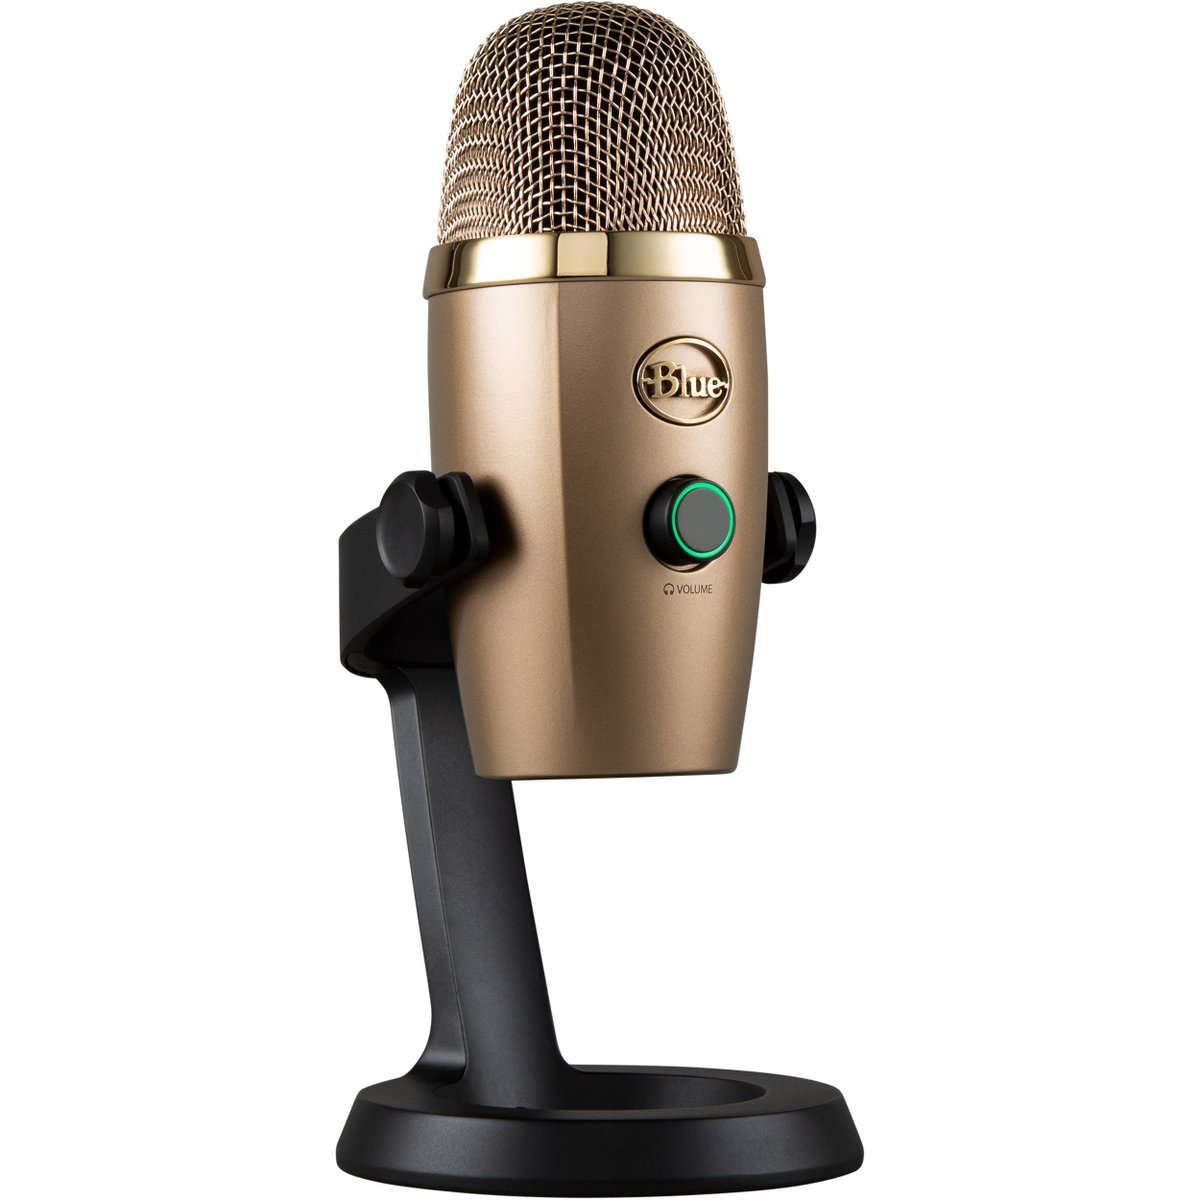 Blue Yeti Nano Giveaway!  #win via @GleamApp   Retweet and Comment 3 friends for extra entries!!! Giveaway ends January 31st!  #twitchtv #TwitchStreamers #twitch #microphone #Streamer